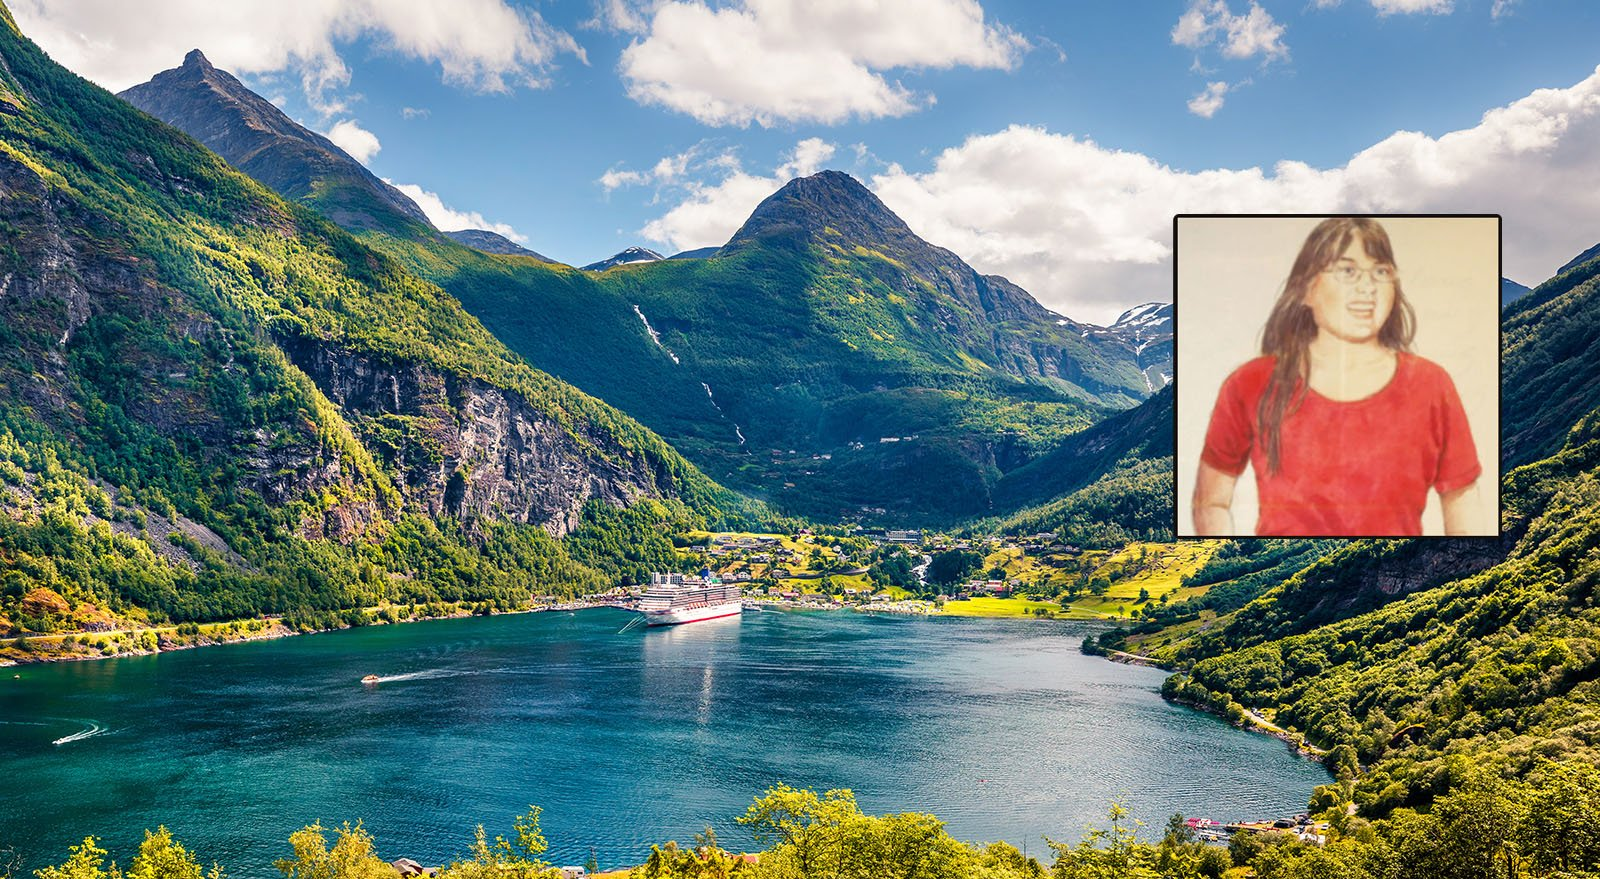 Geiranger true crime mystery in Norway